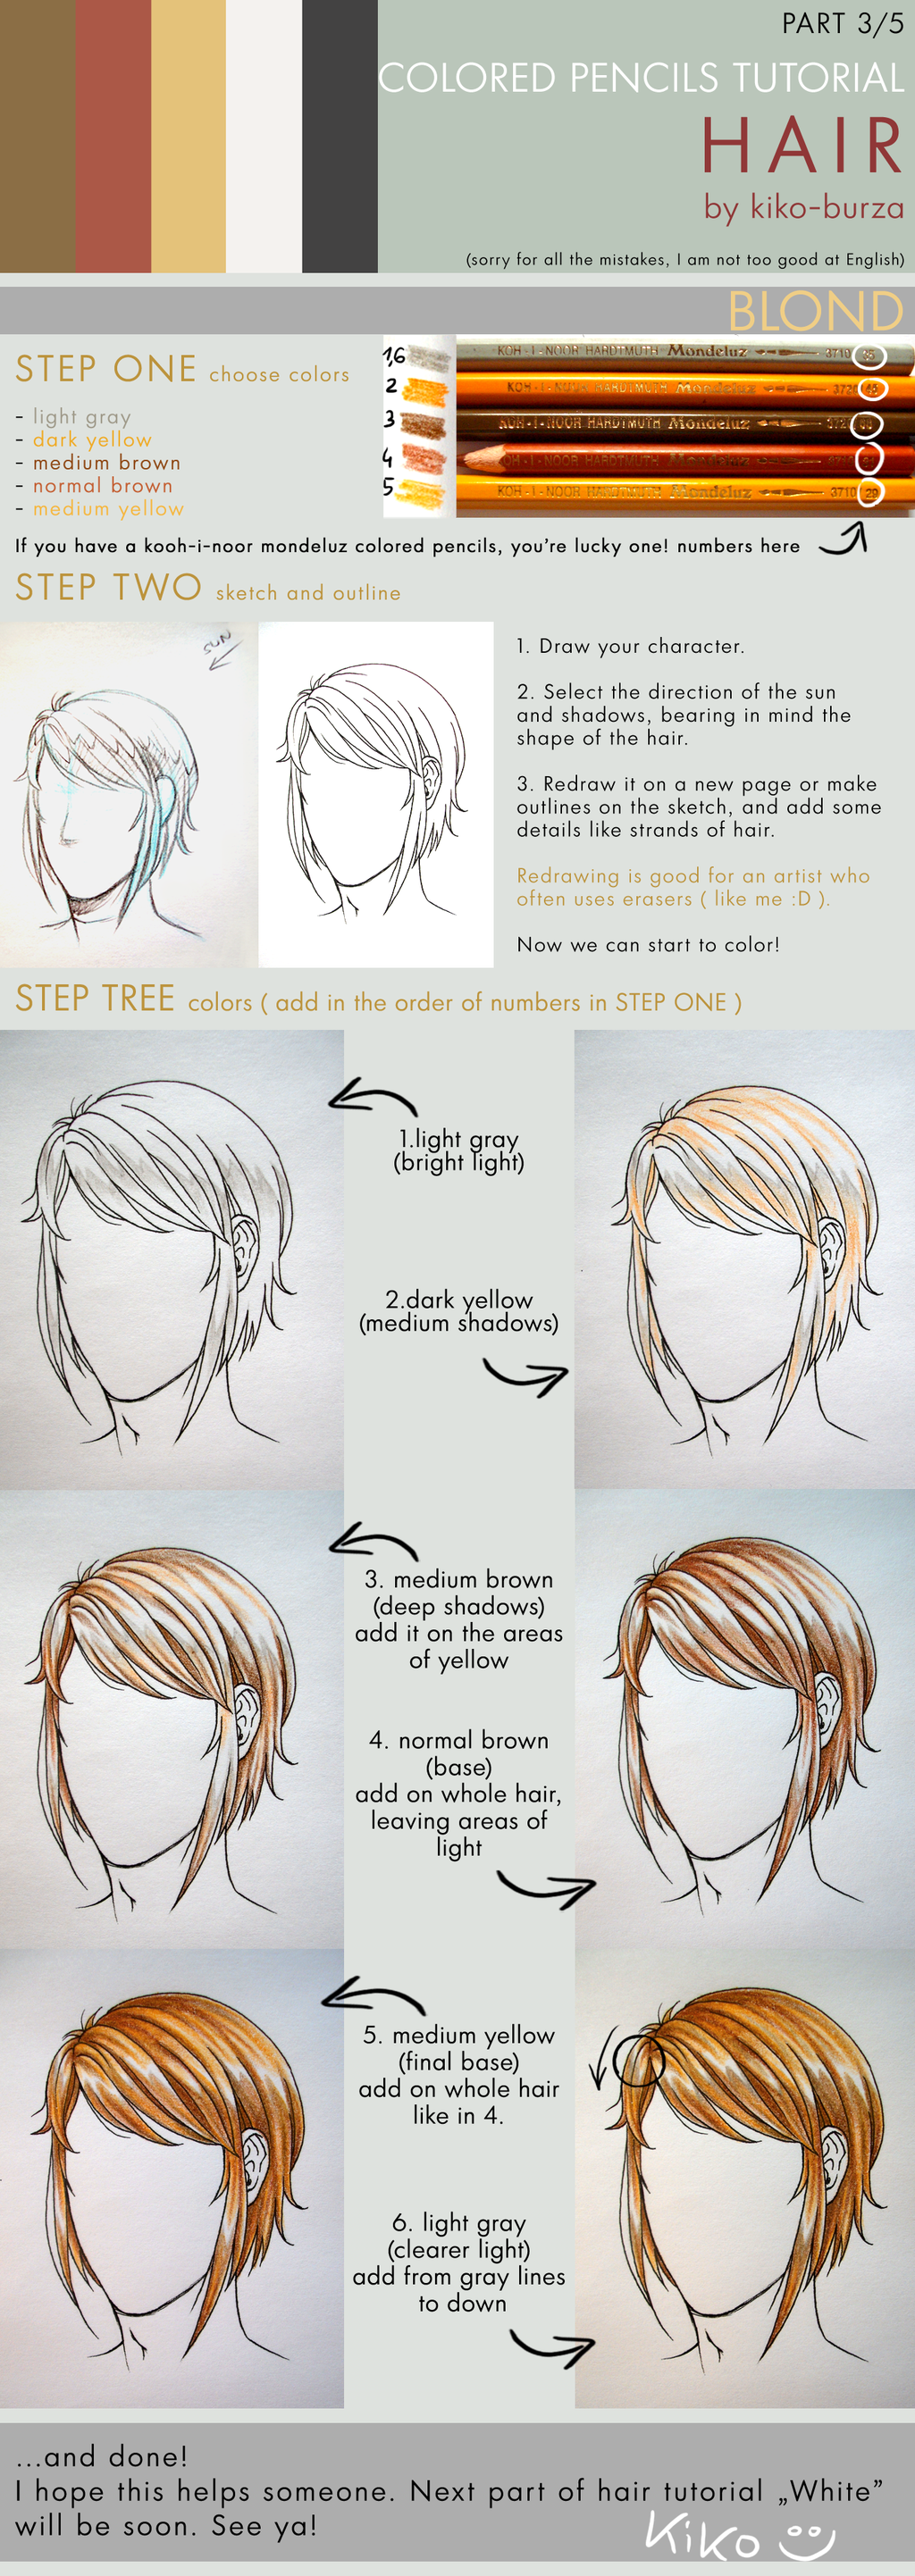 Colored Pencils Tutorial Hair Part 3